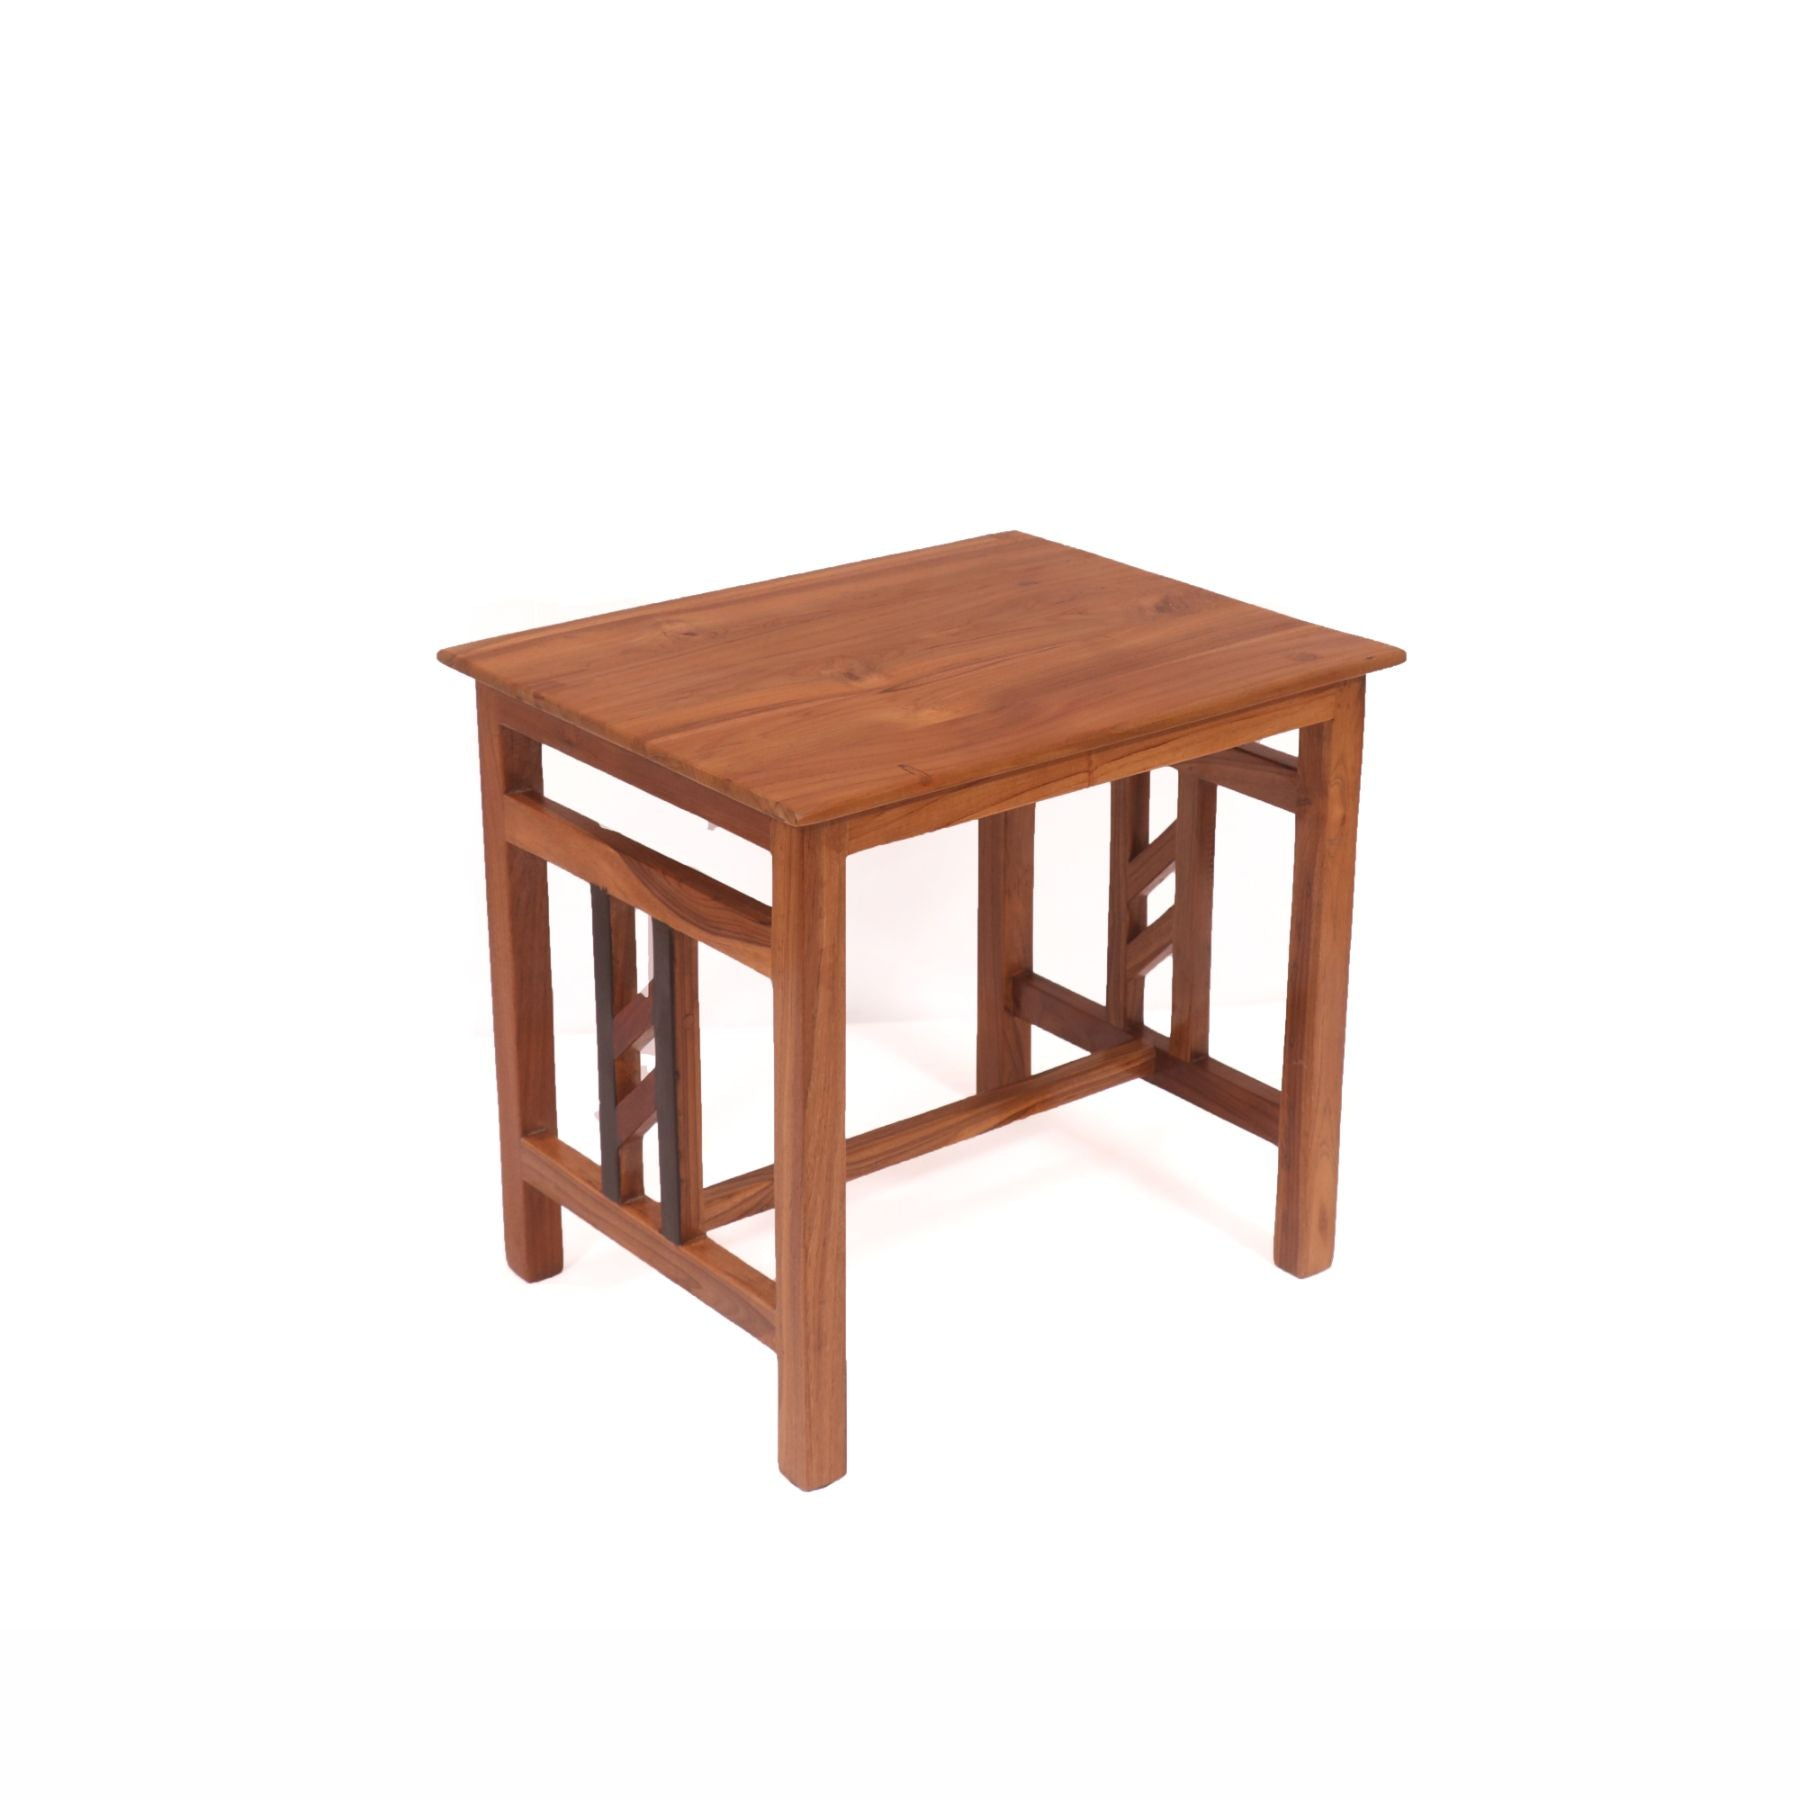 Teak Wood Simple Coffee Table